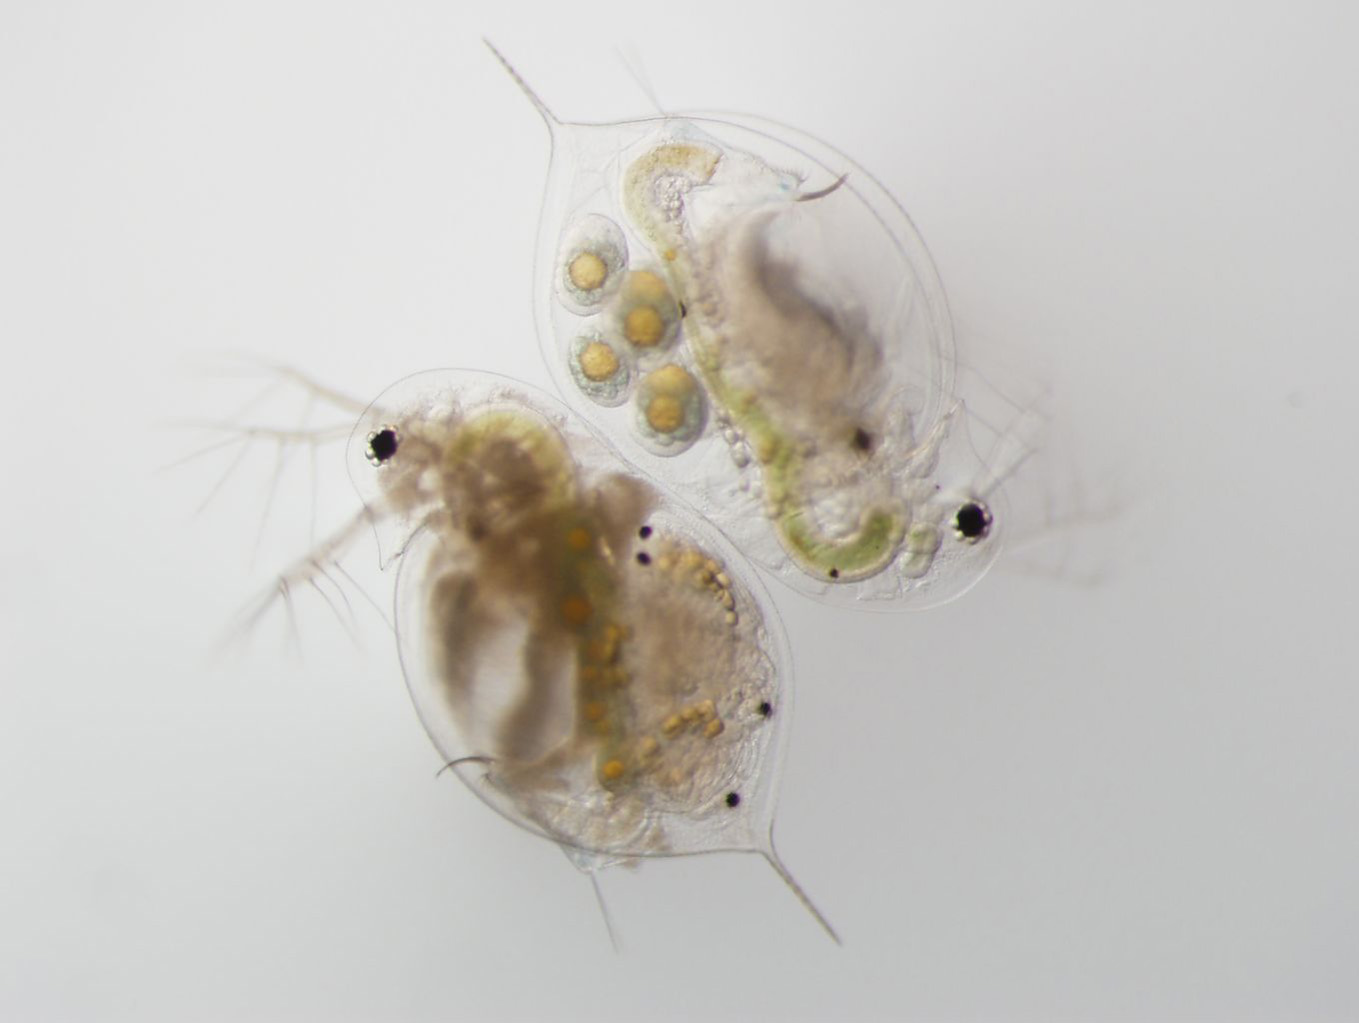 Daphnia-infected-uninfected-Metschnikowia